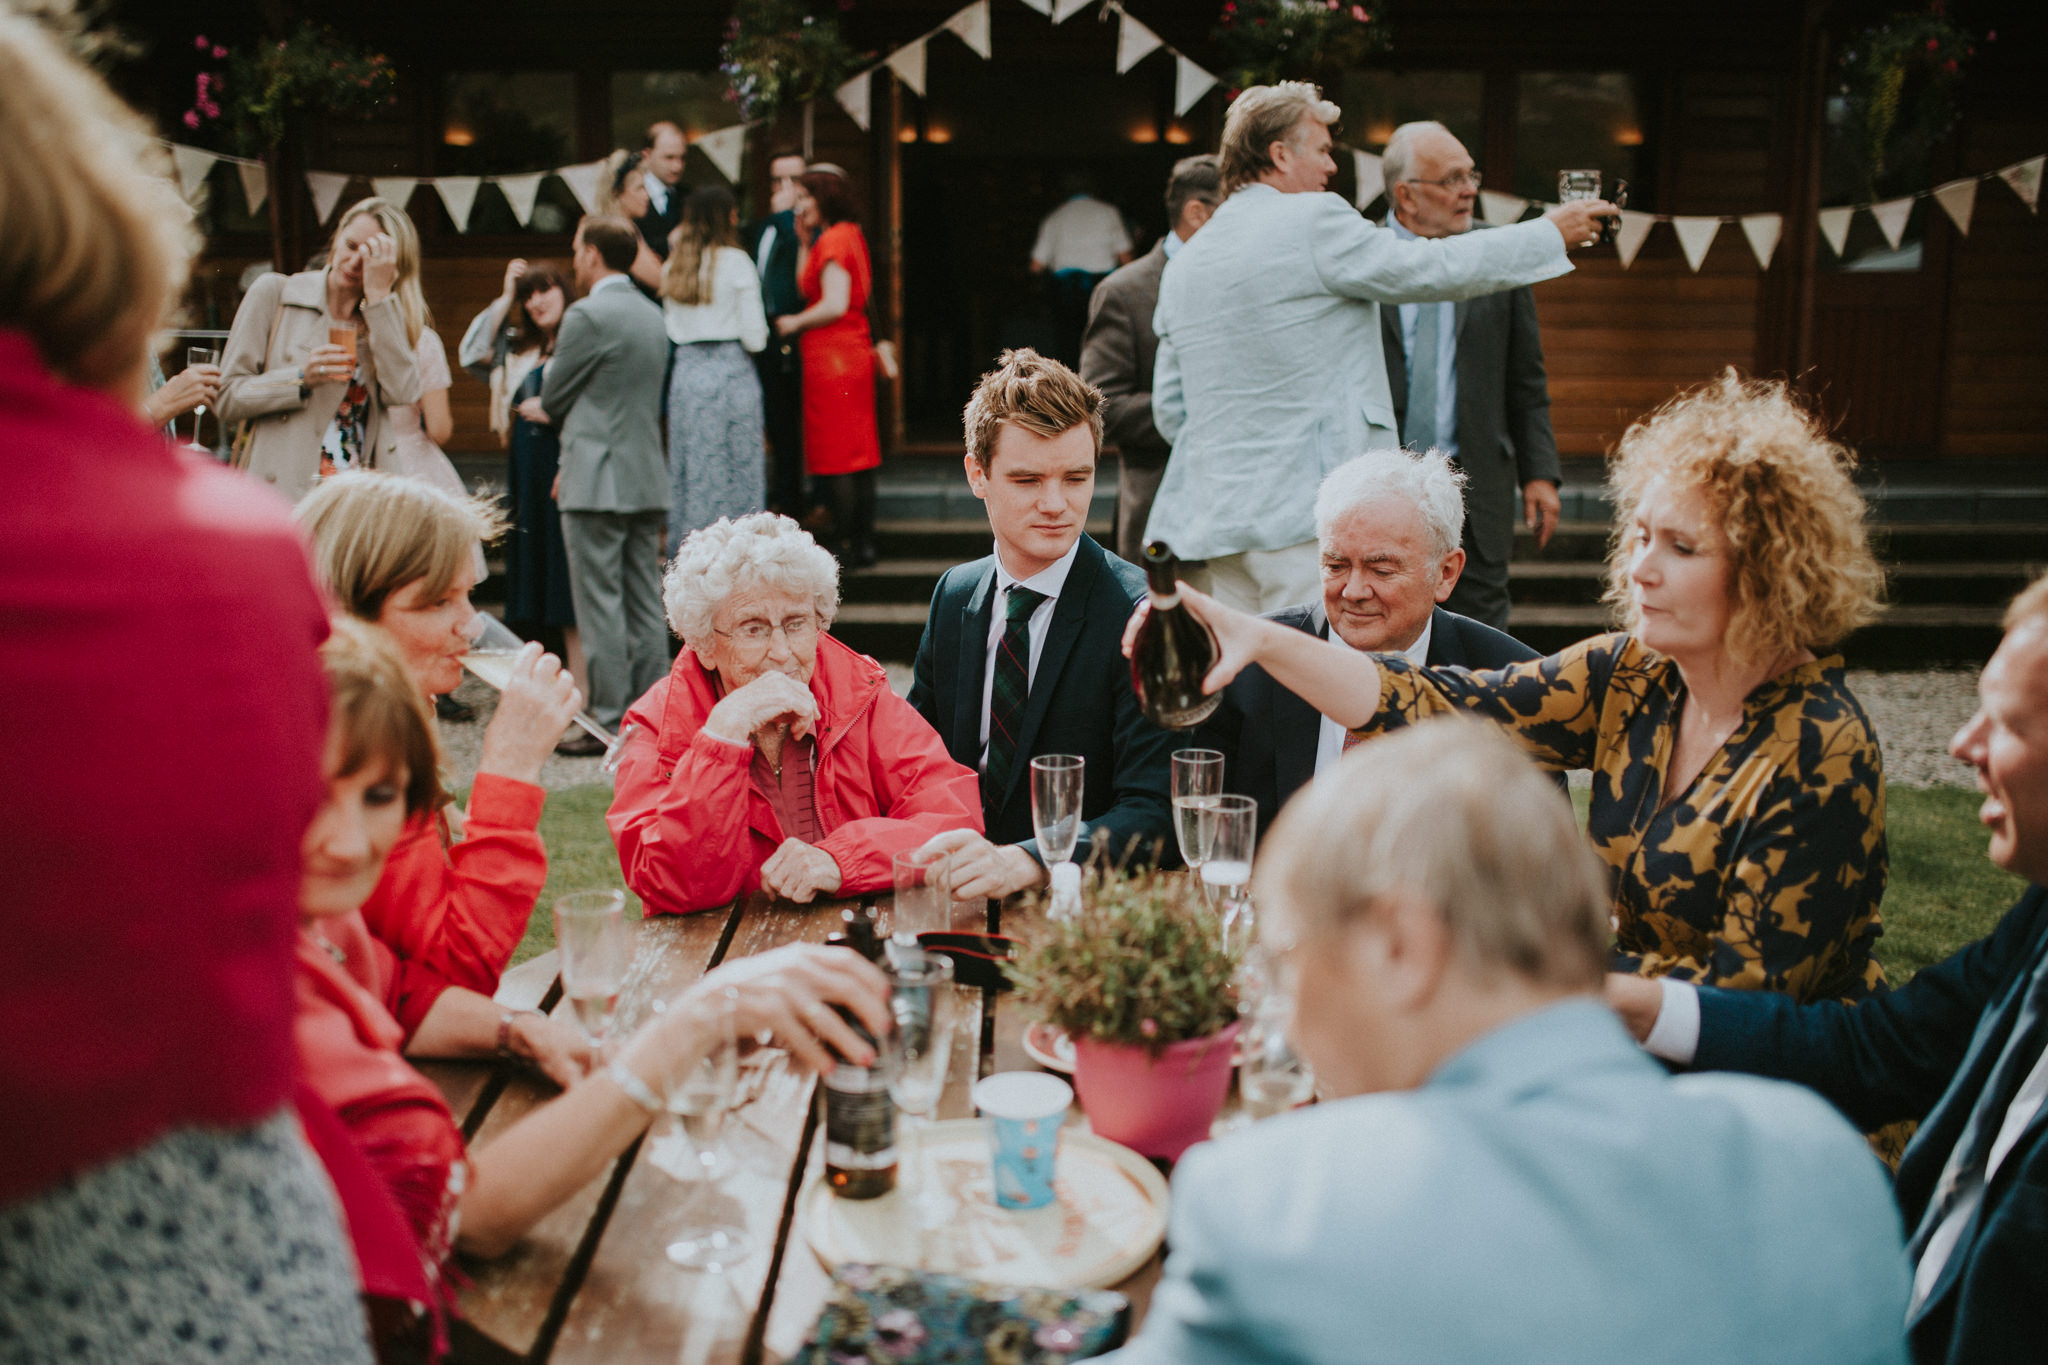 Wedding guests are sitting outside at a wooden table.